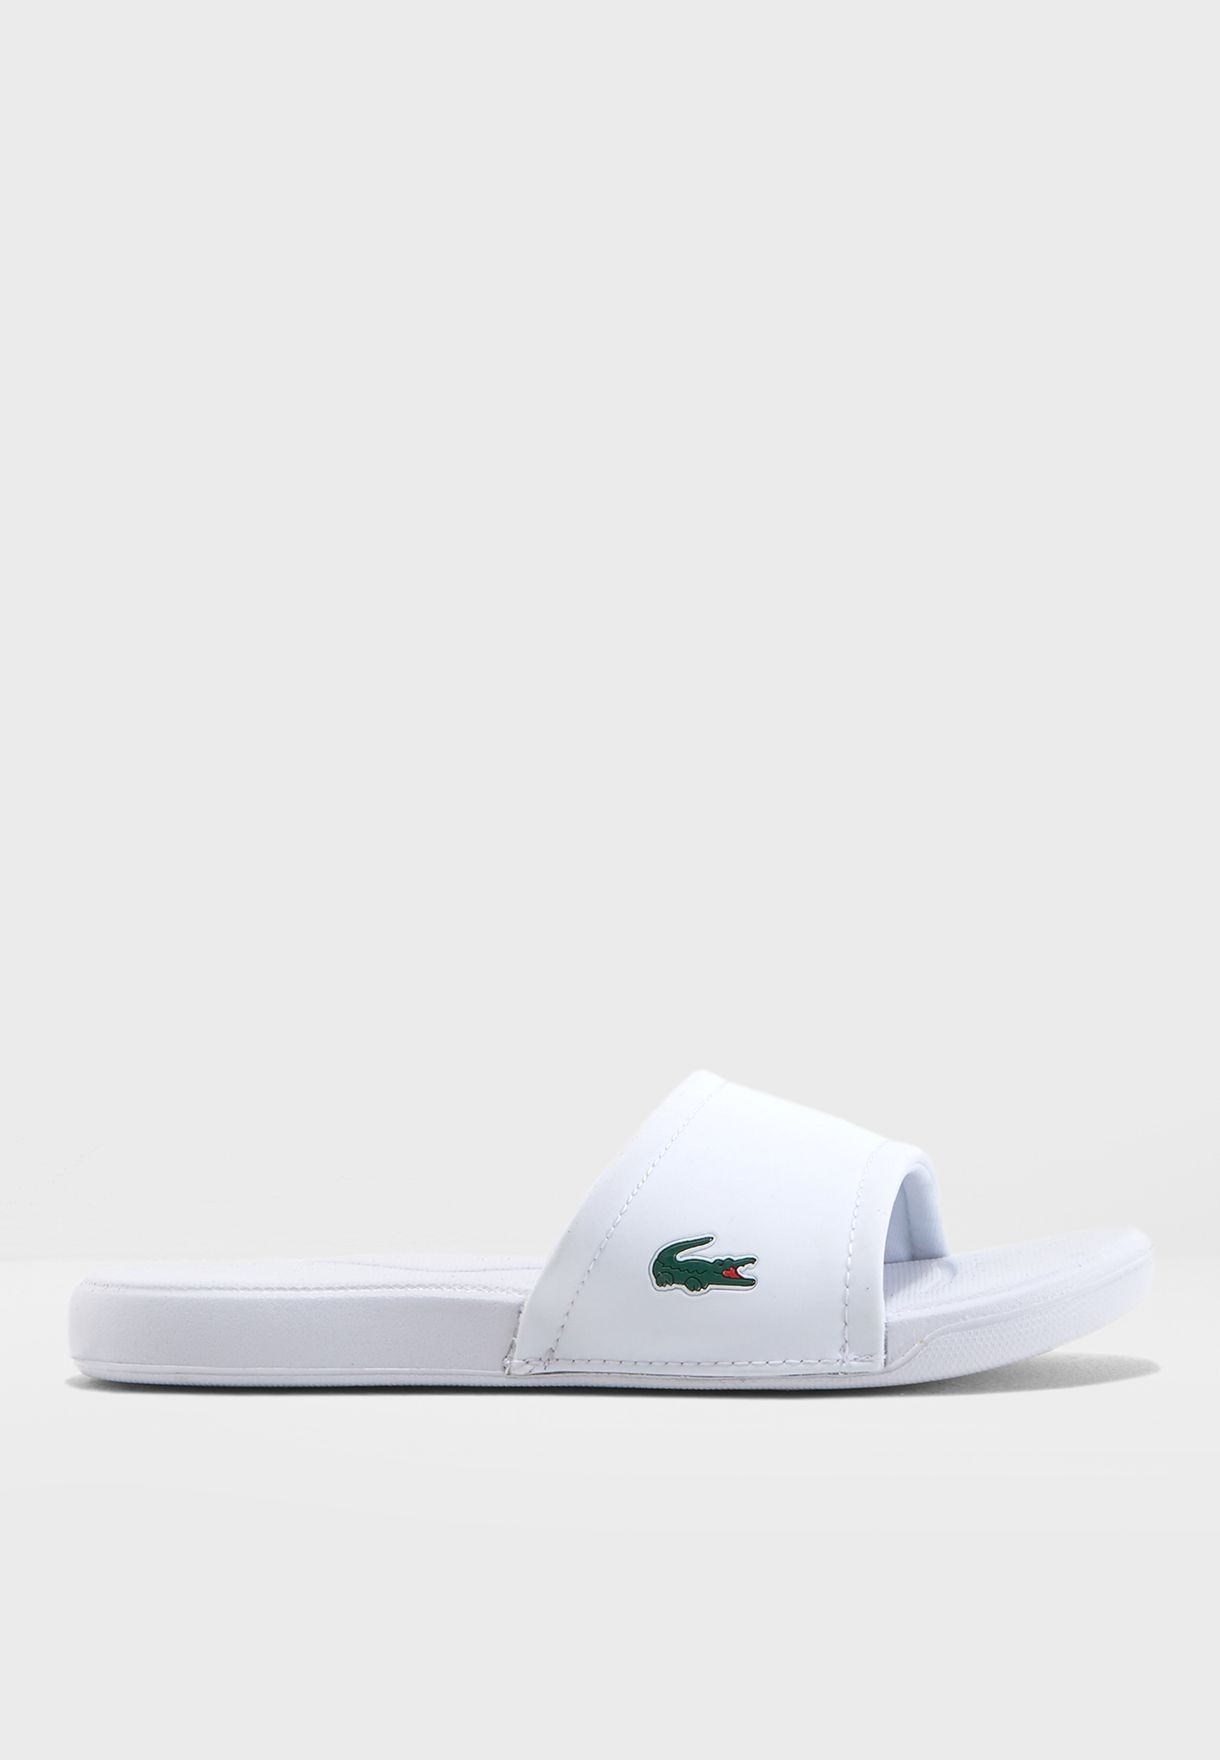 646ccb396 Shop Lacoste white Youth L.30 118 1 Slip On 35CAJ0011-21G for Kids ...